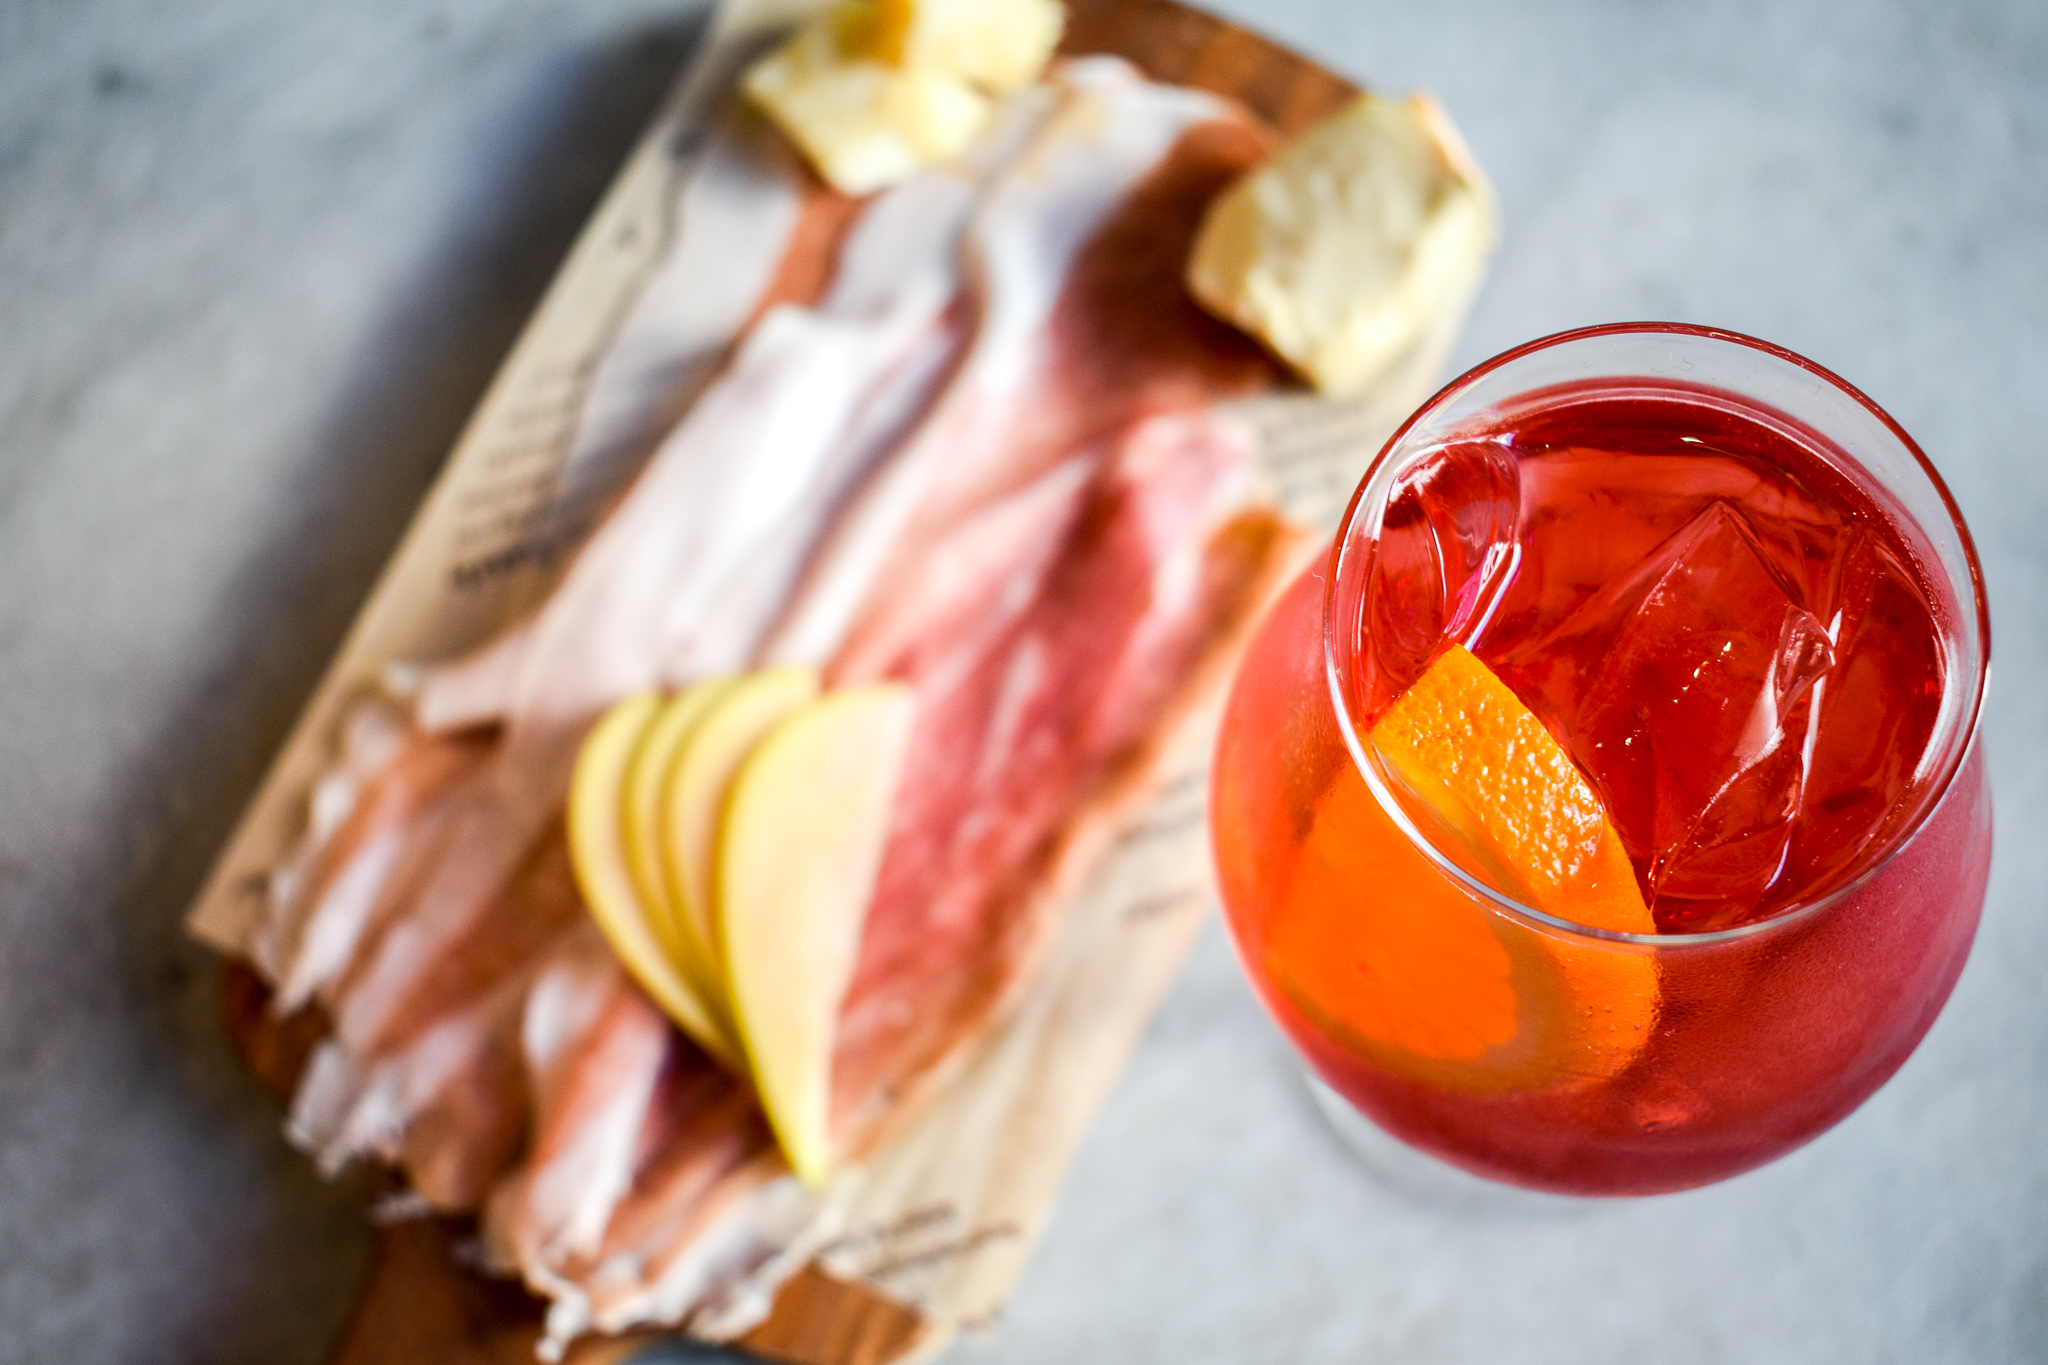 Spritz with meat and cheese board at the Eataly Los Angeles happy hour Aperitivo